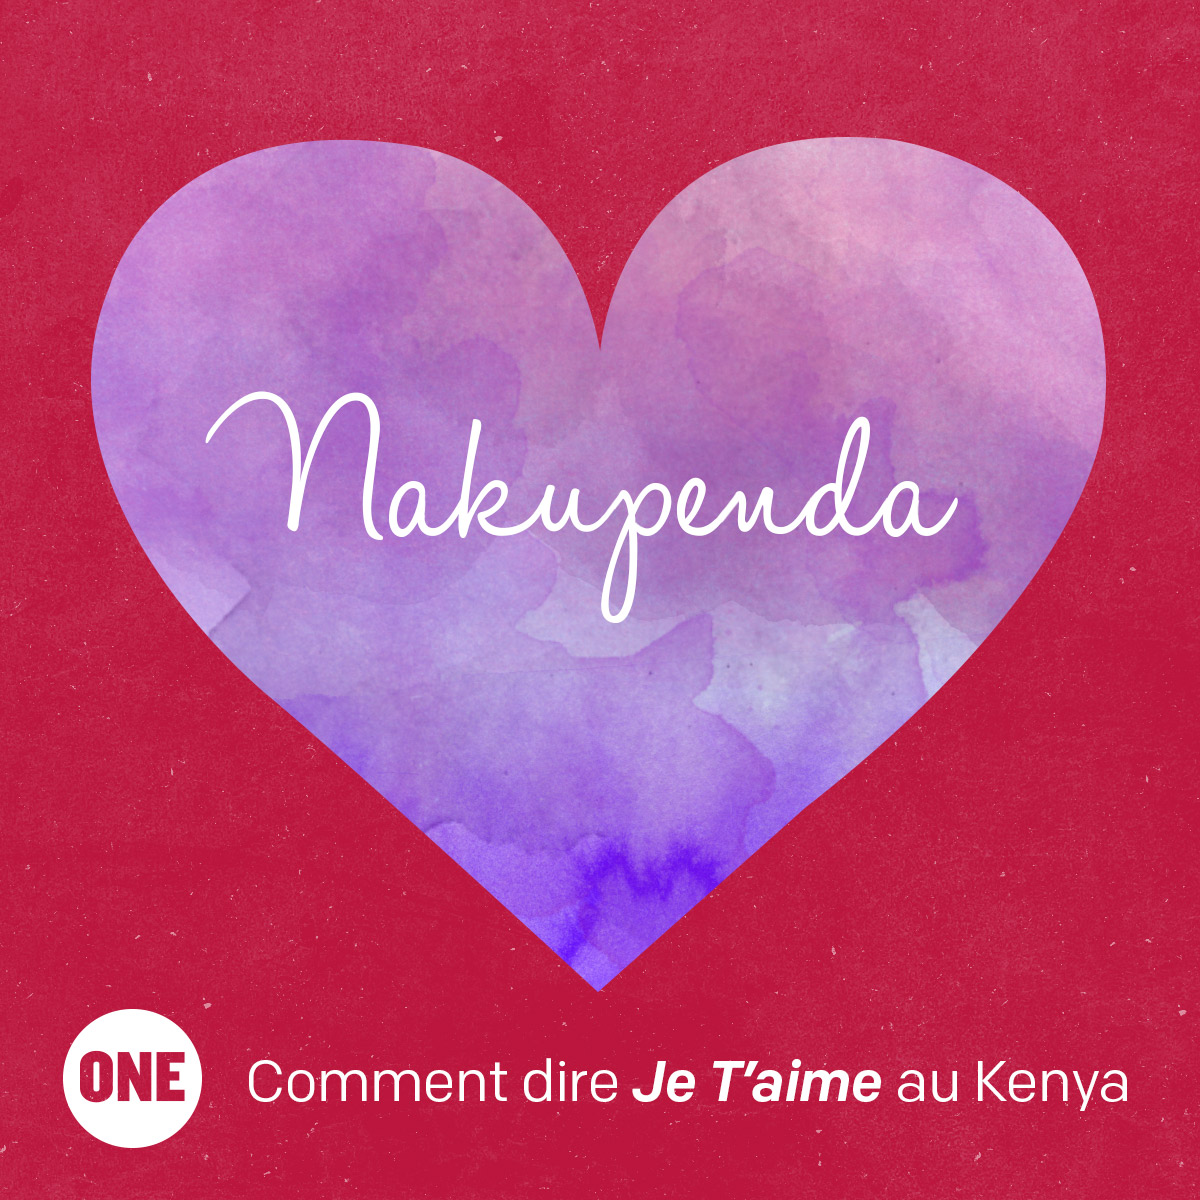 22US2014(valentine-card-share-graphic)_kenya_FRENCH (2)